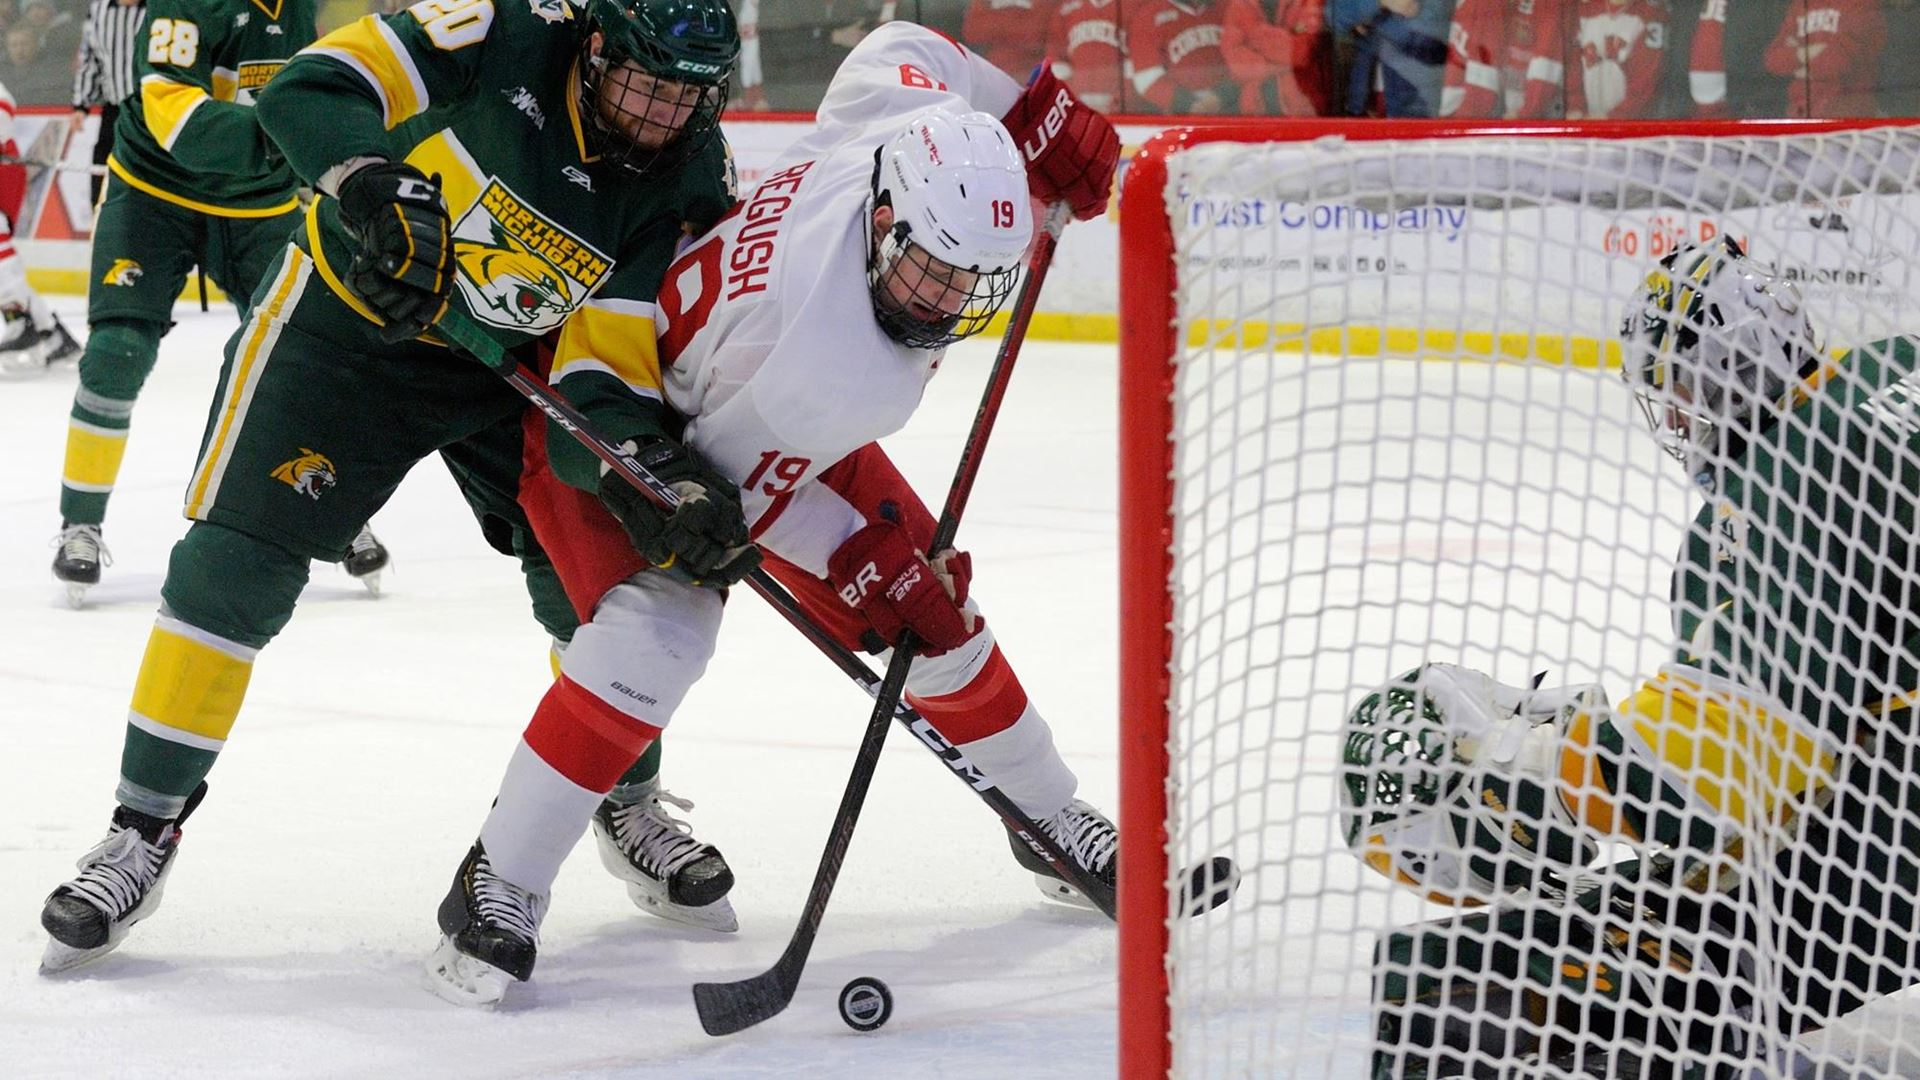 Cornell opens series vs. Northern Michigan with 2-2 tie